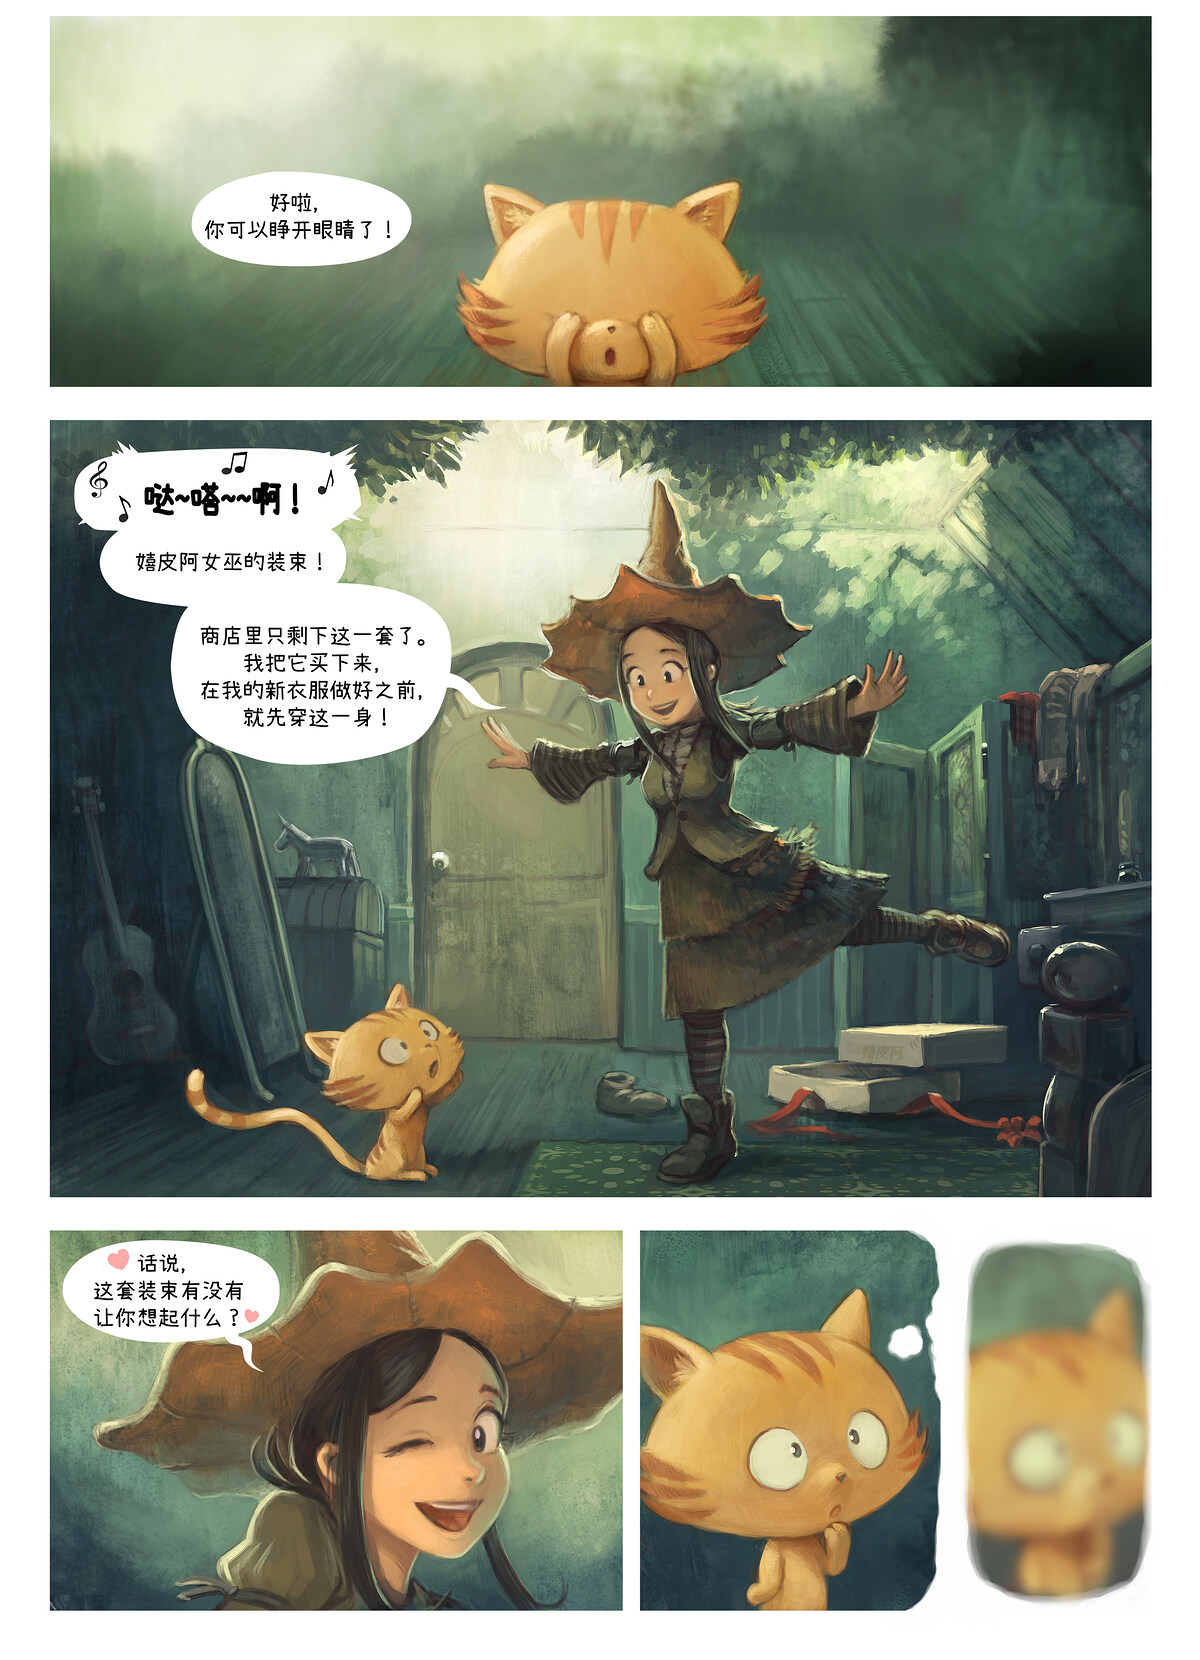 A webcomic page of Pepper&Carrot, 漫画全集 18 [cn], 页面 1